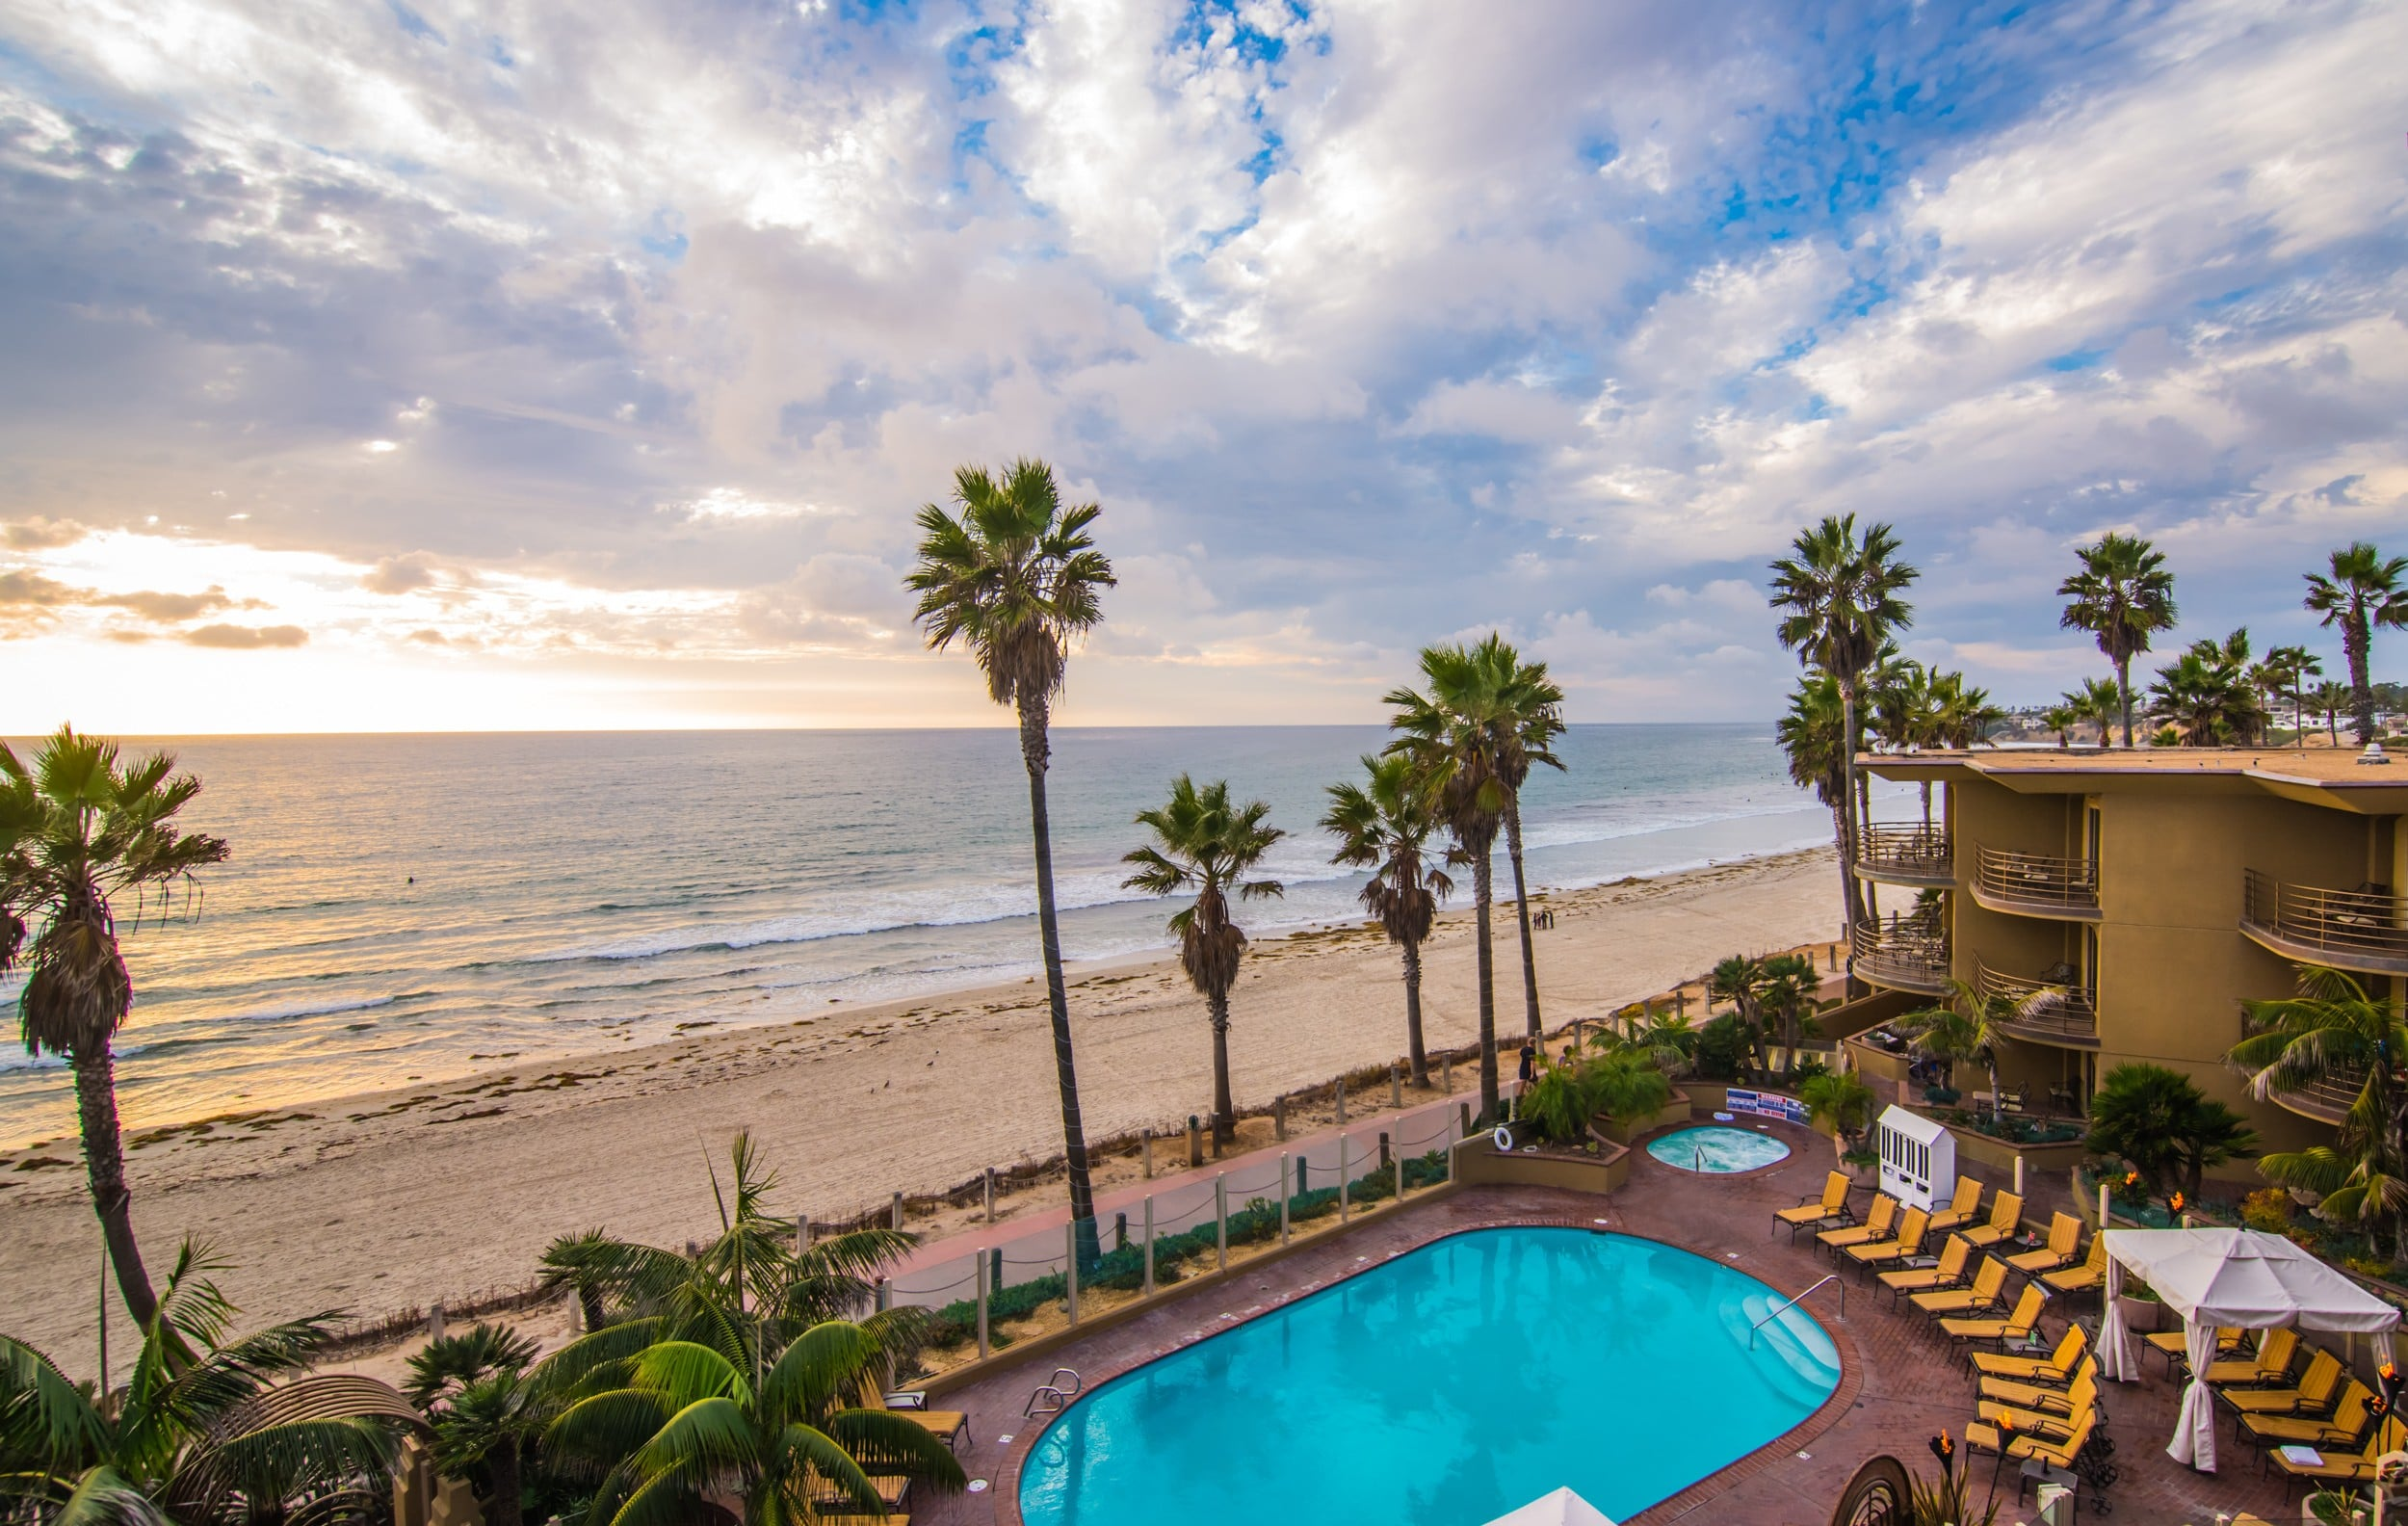 Aerial view over the pool to the beach at Pacific Terrace Inn, one of the best San Diego hotels on the beach.